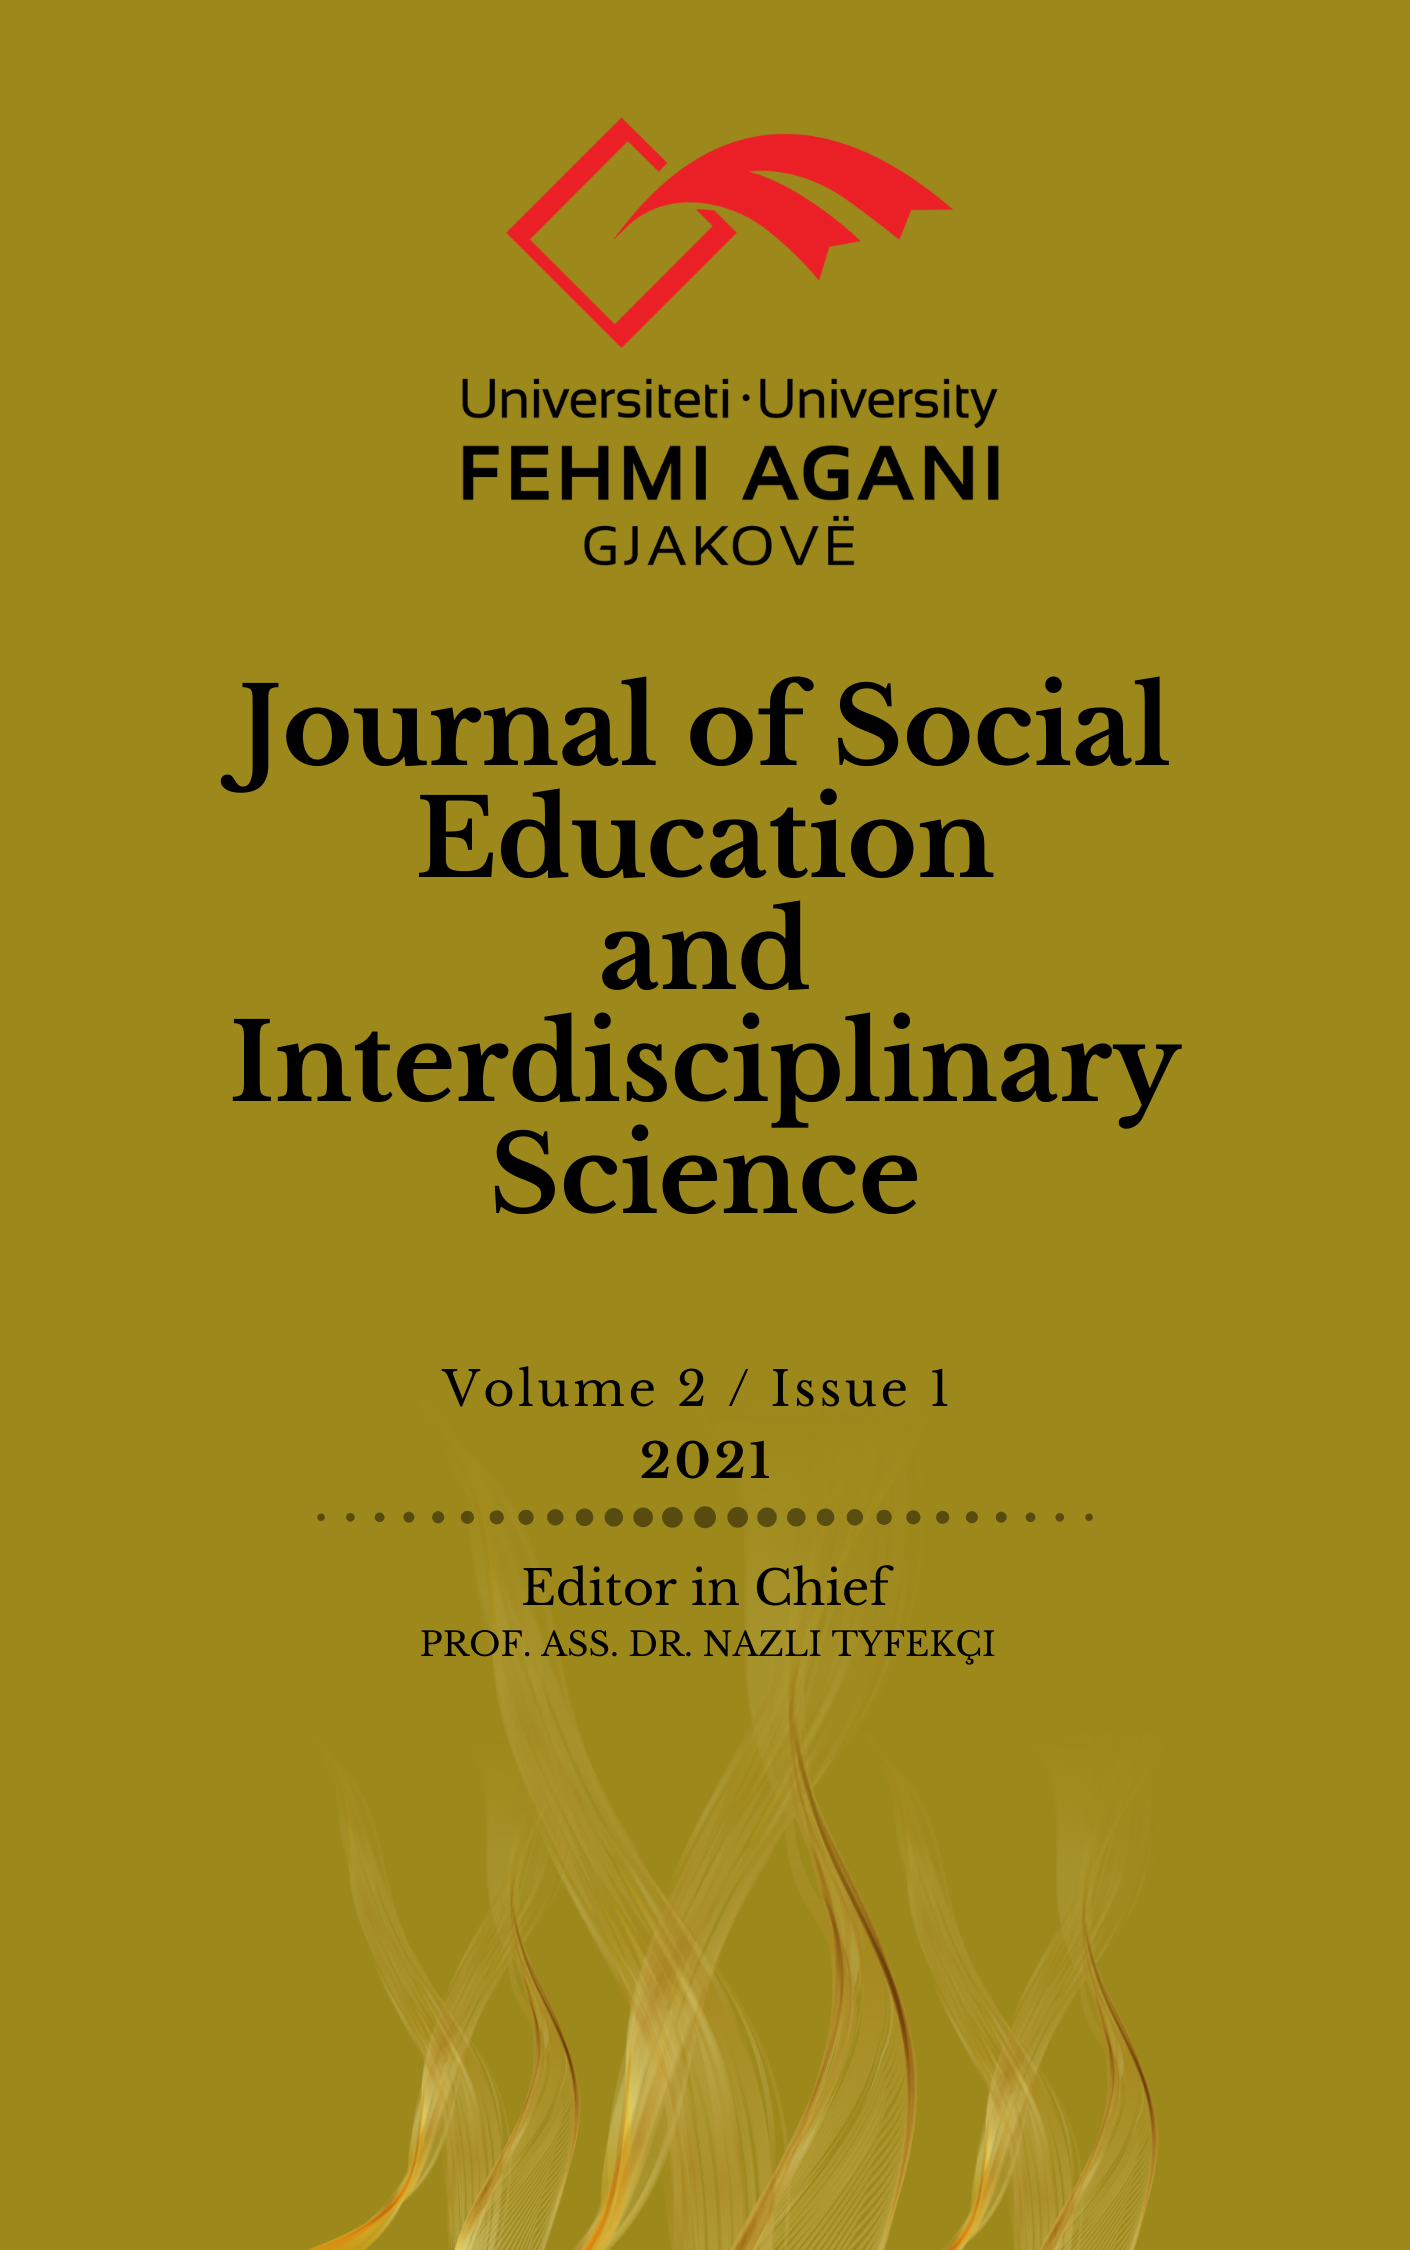 View Vol. 2 No. 1 (2021): JOURNAL OF SOCIAL EDUCATION AND INTERDISCIPLINARY SCIENCE, VOLUME 2, ISSUE 1